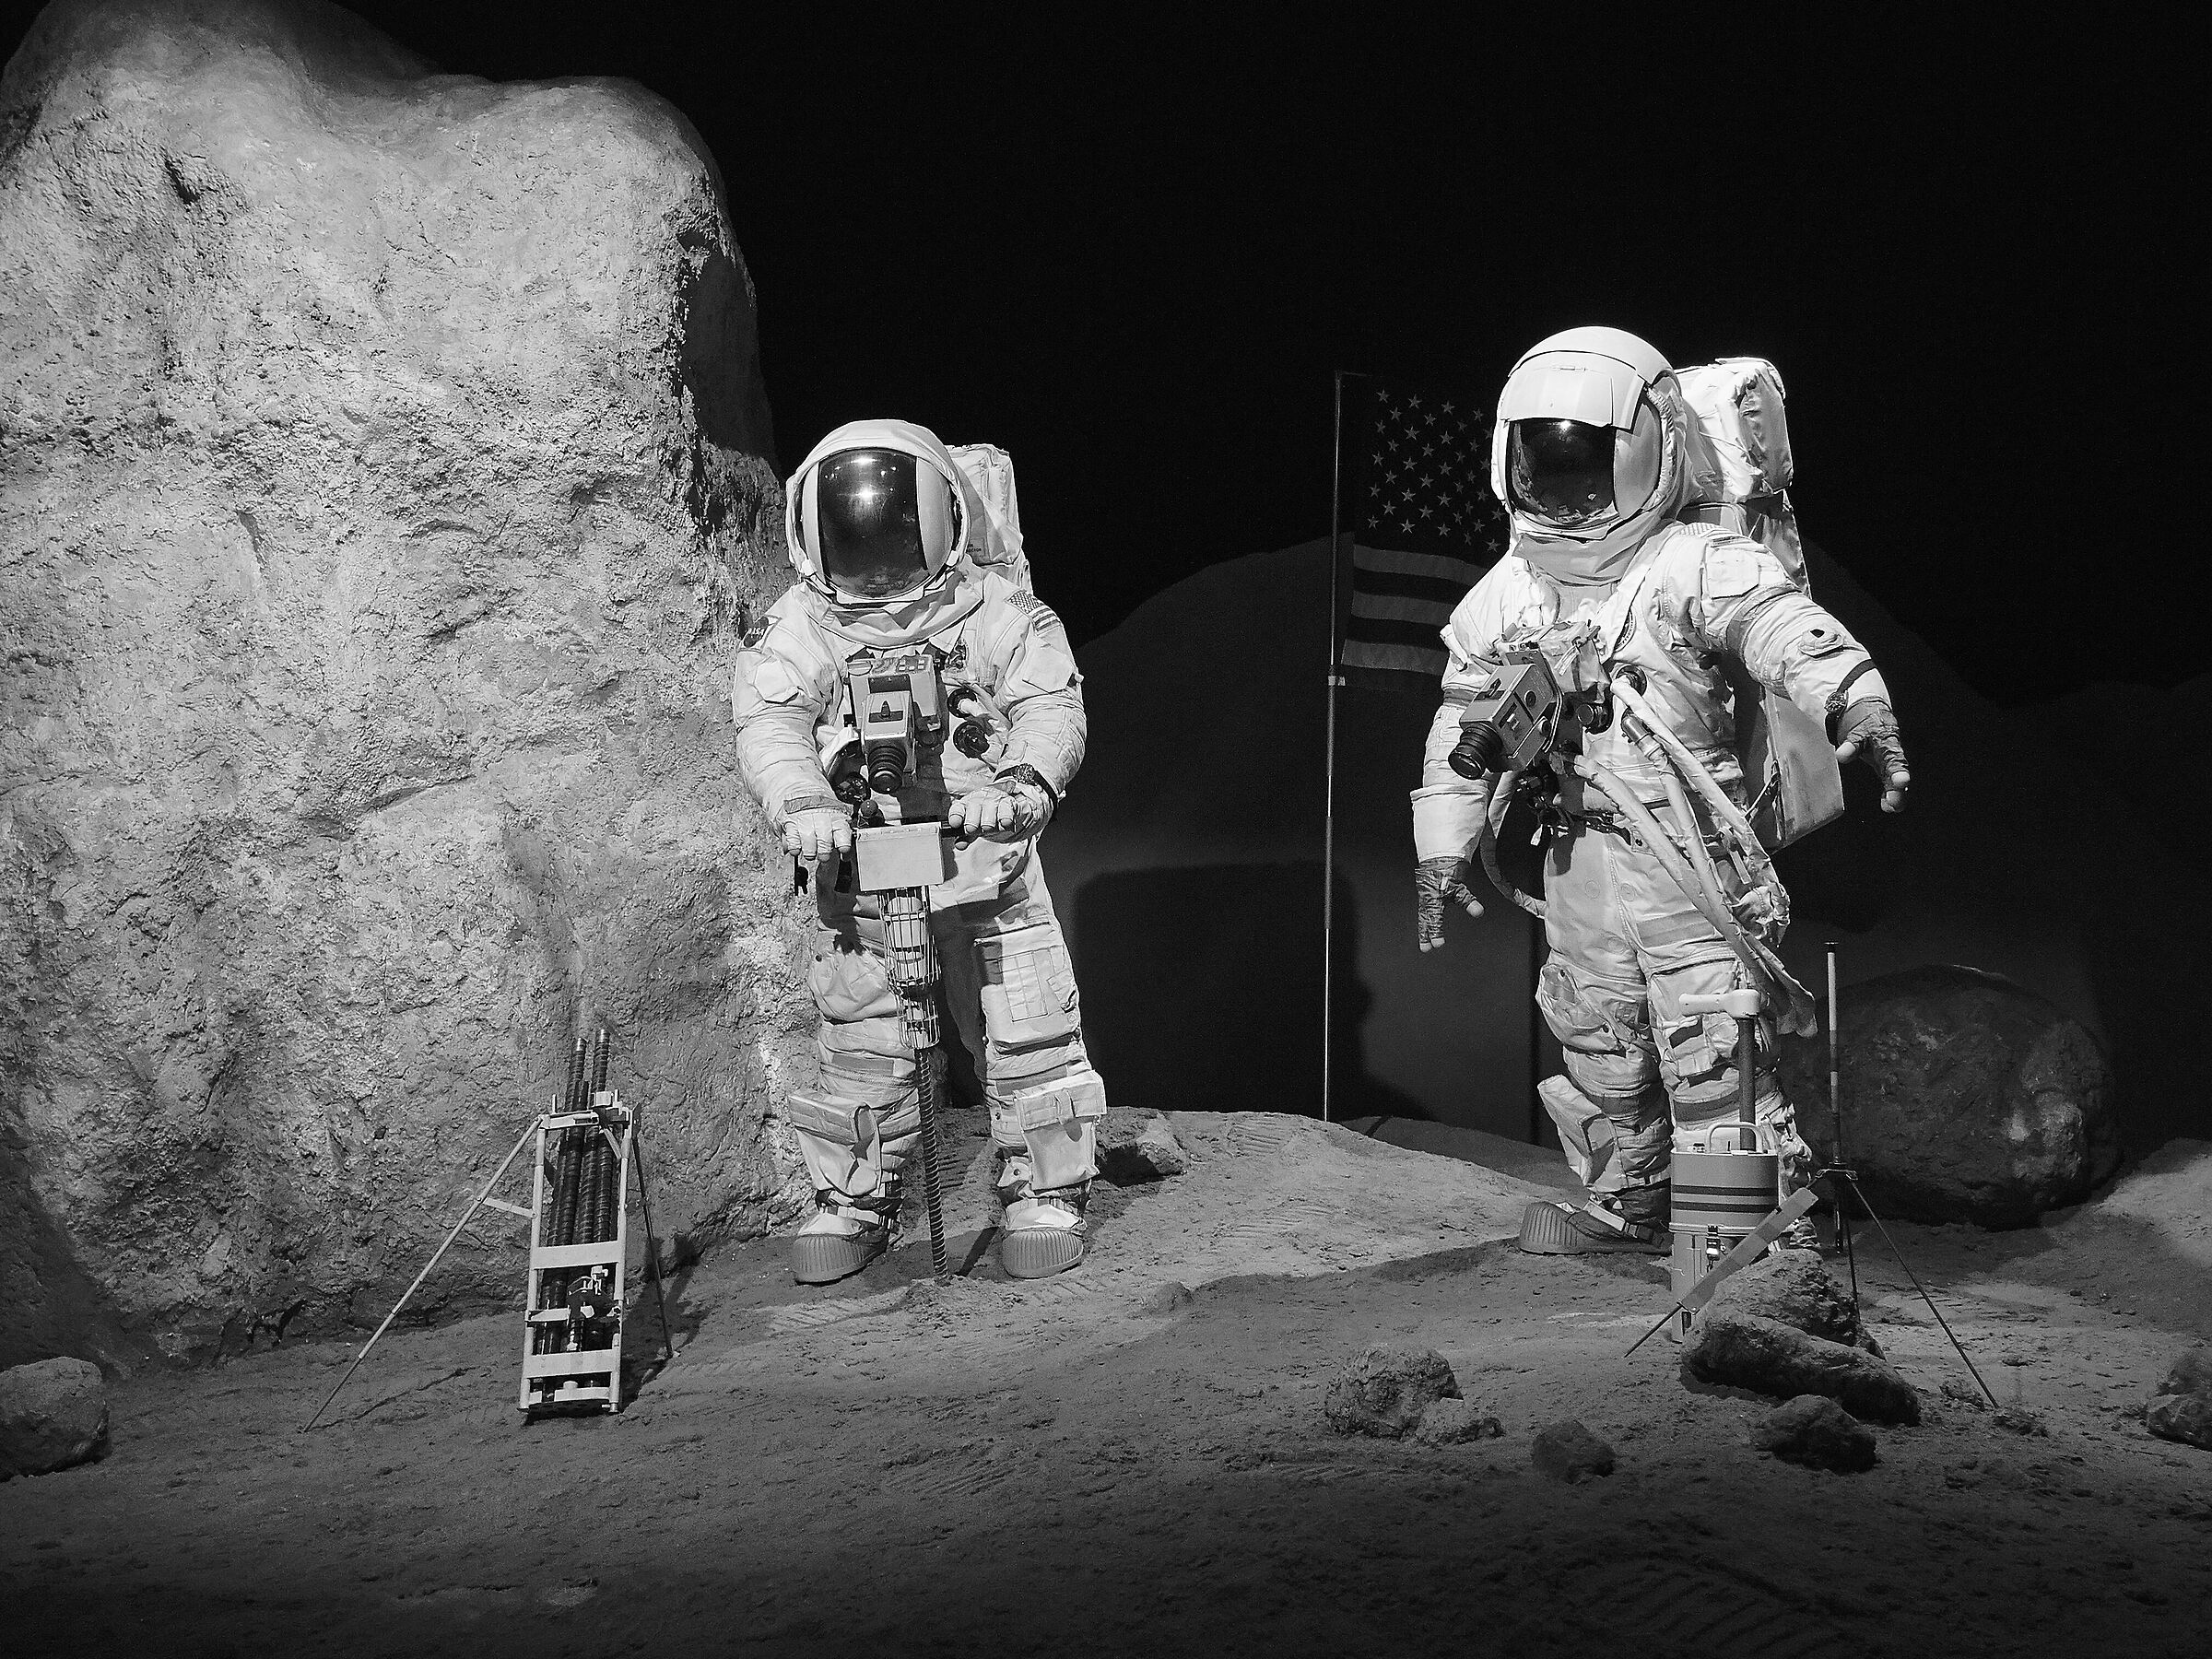 On the Moon...